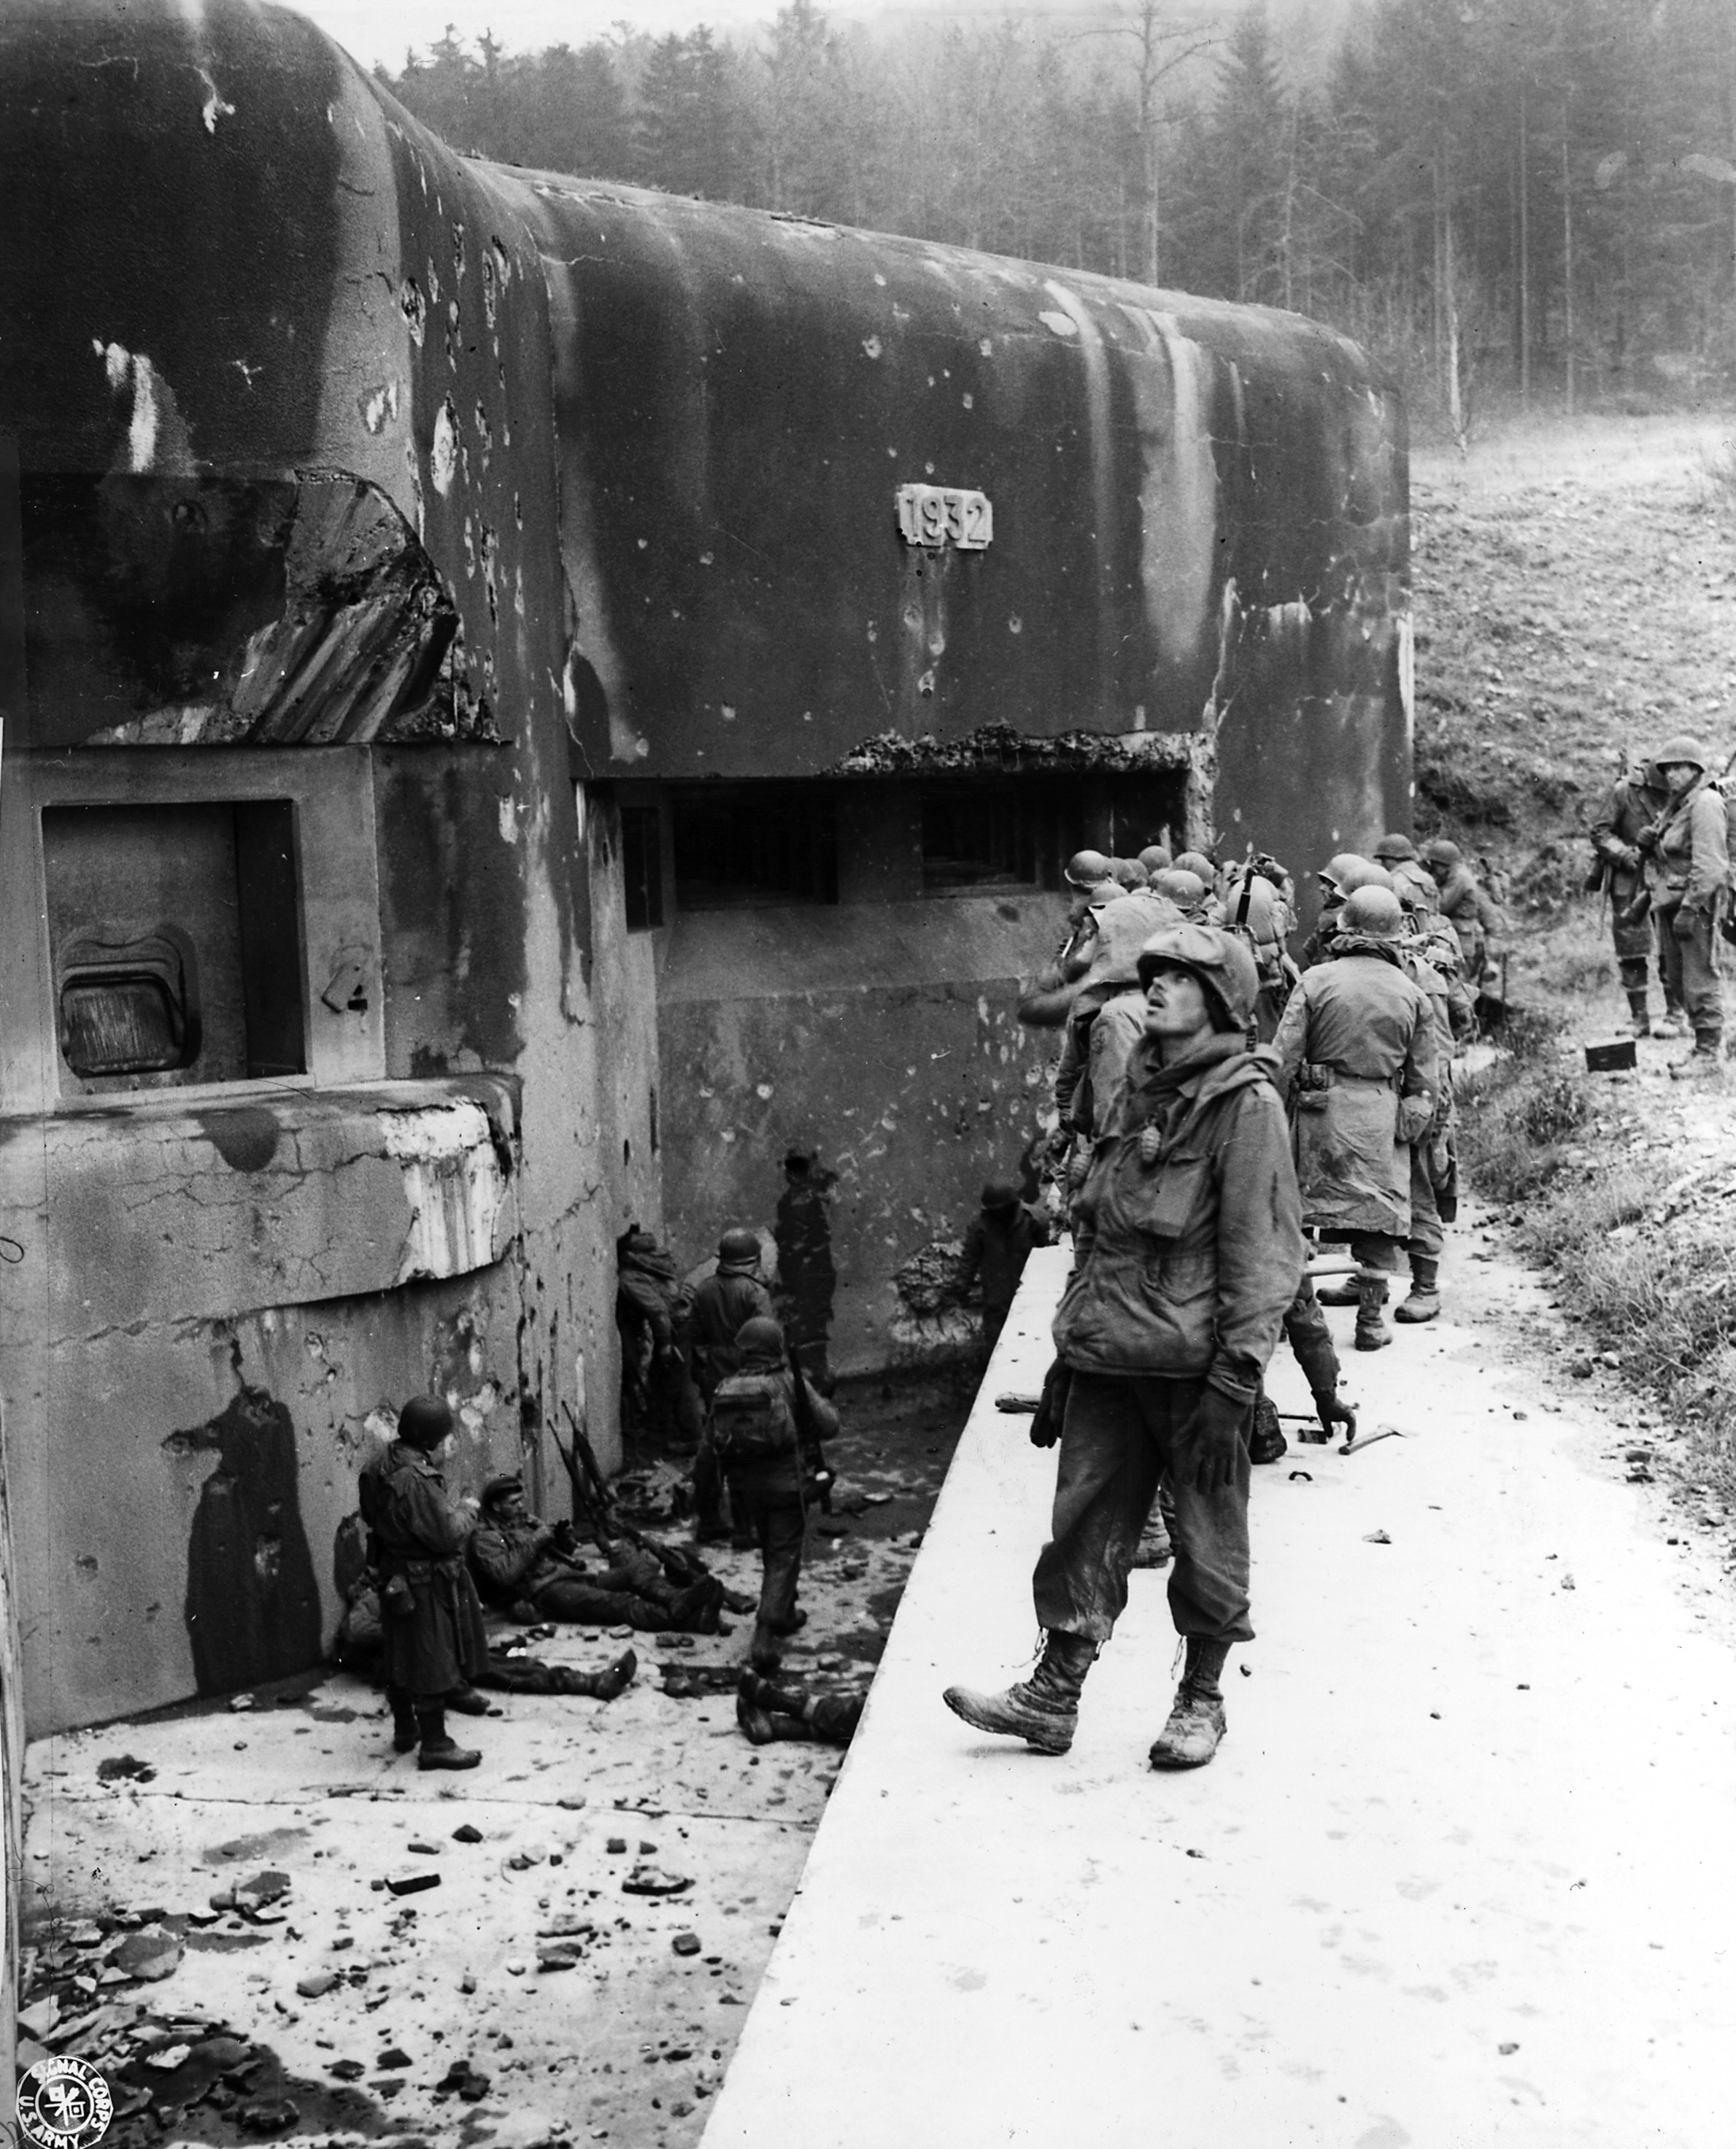 maginot line Photos by s/sgt jerry pinkowski of the 347th ordnance depot company of the maginot line in 1944.